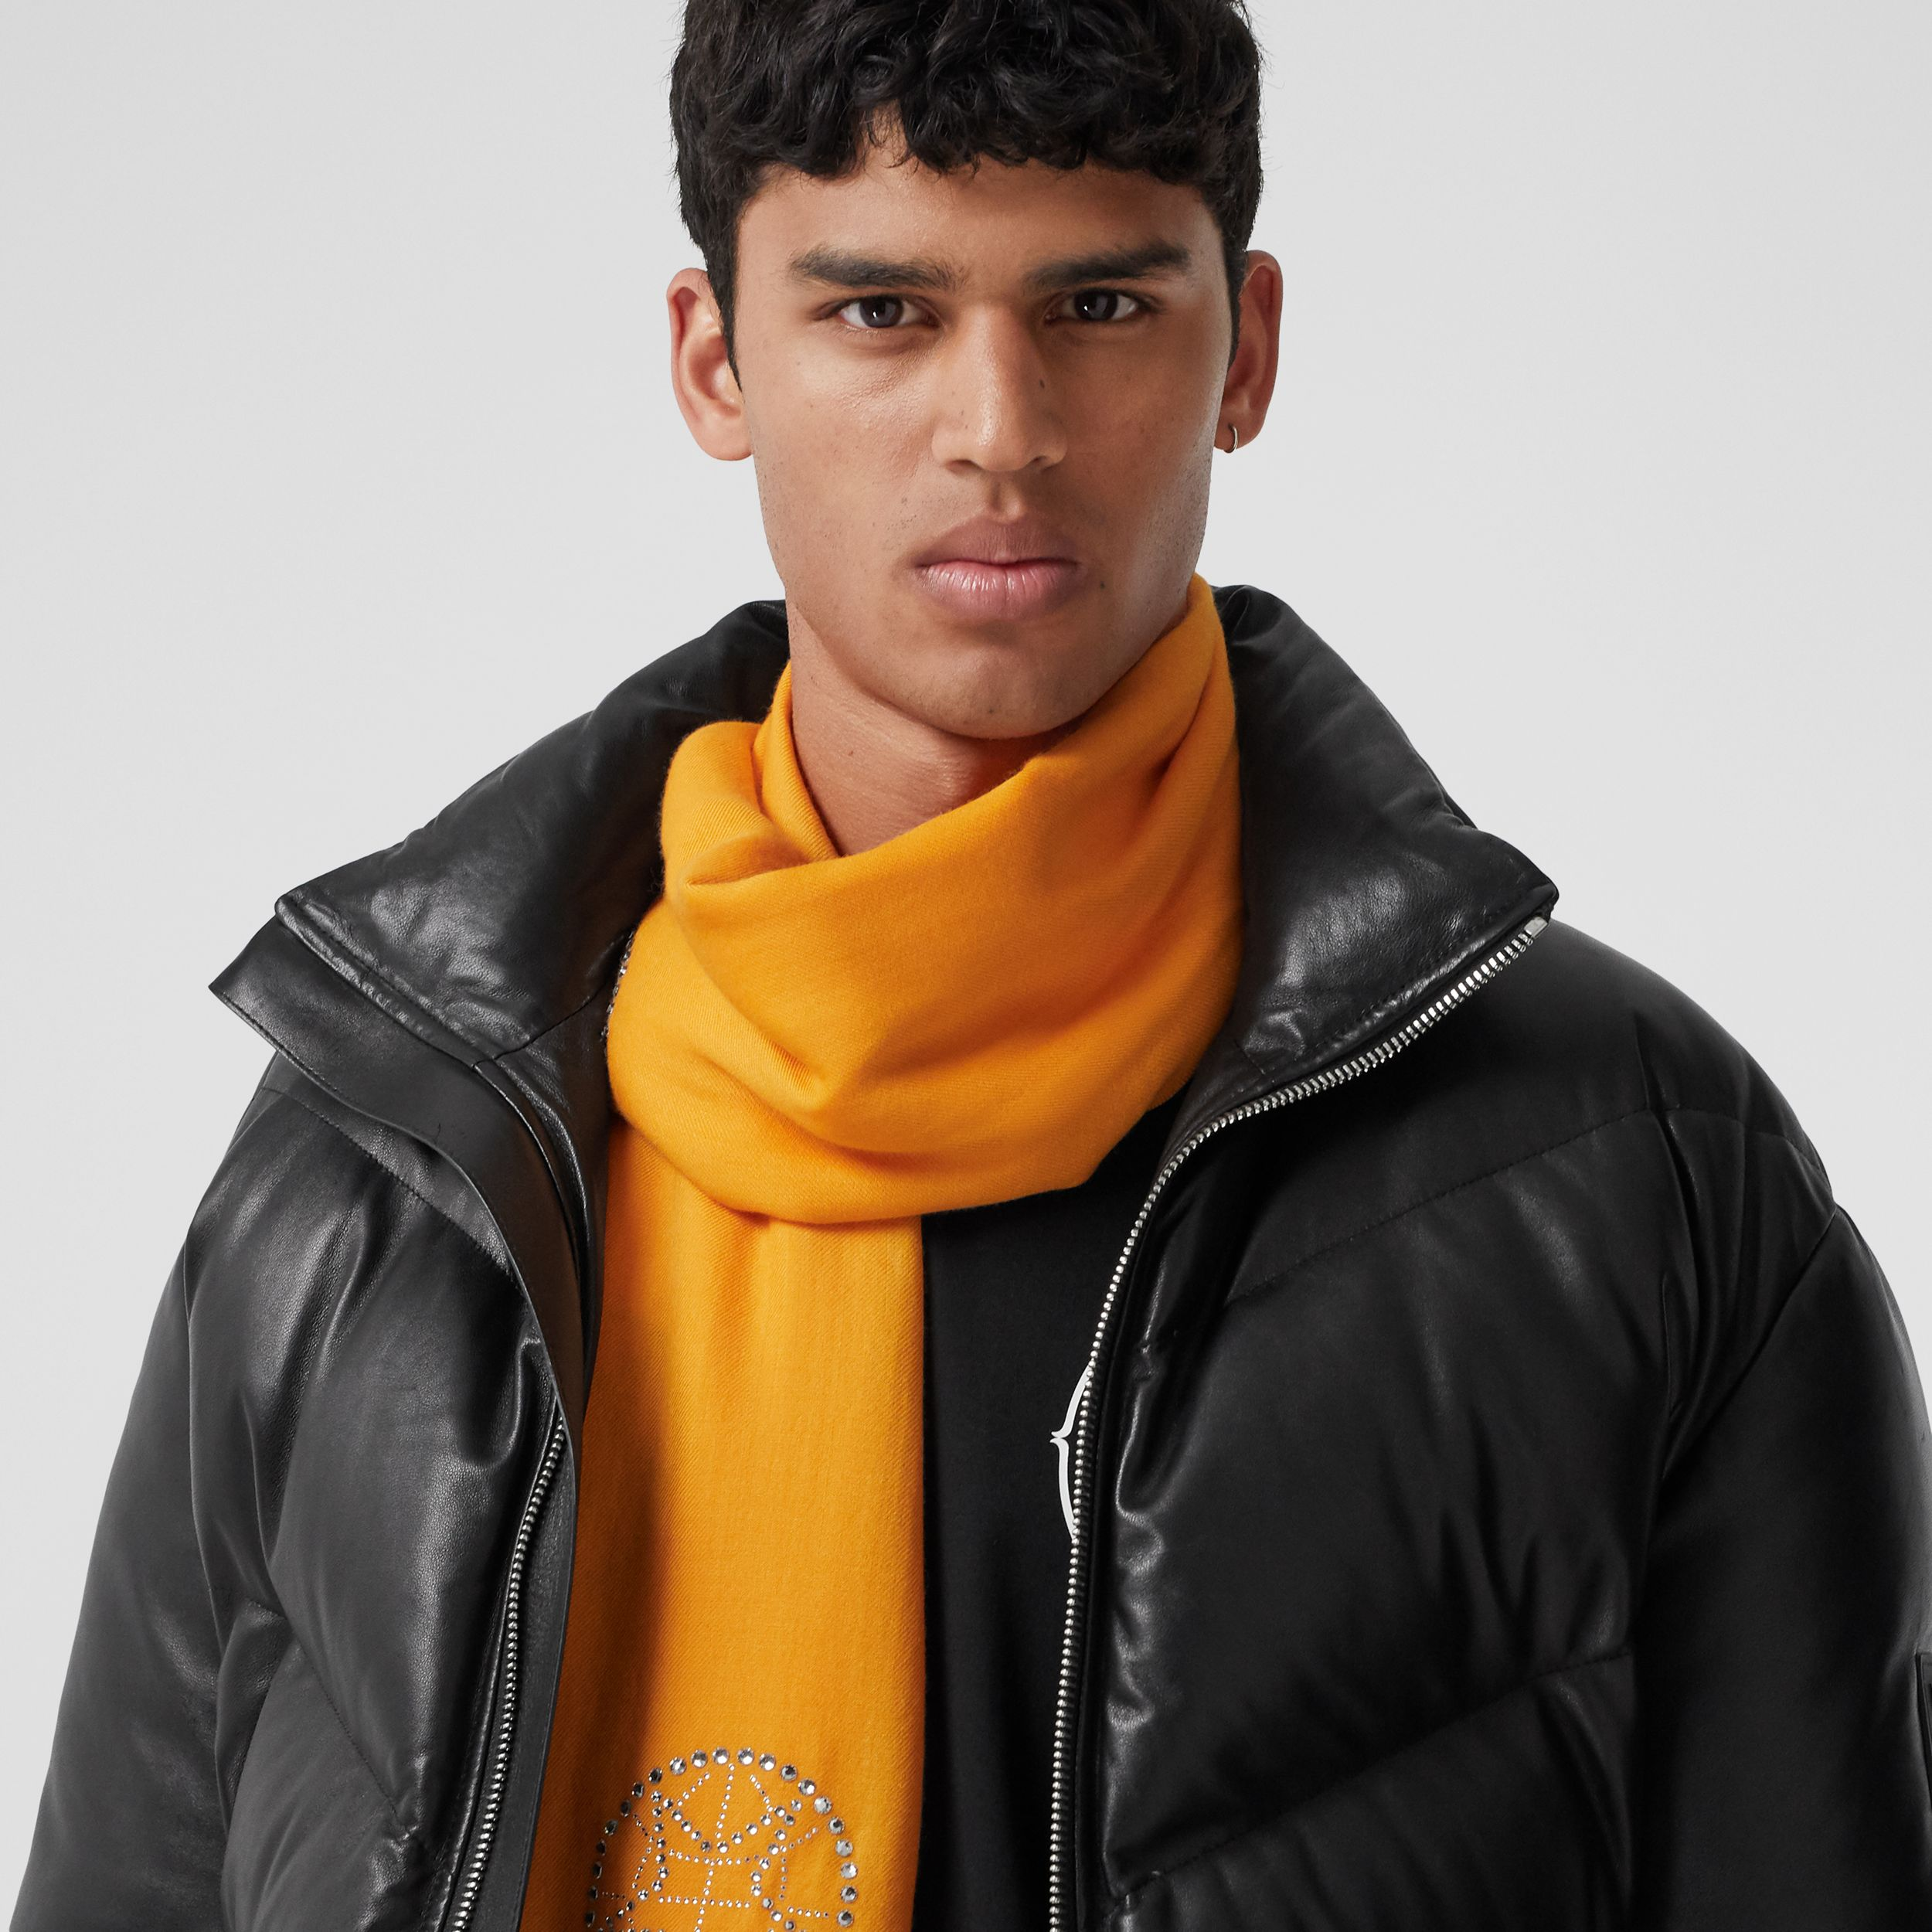 Crystal Globe Graphic Lightweight Cashmere Scarf in Citrus Orange | Burberry - 4